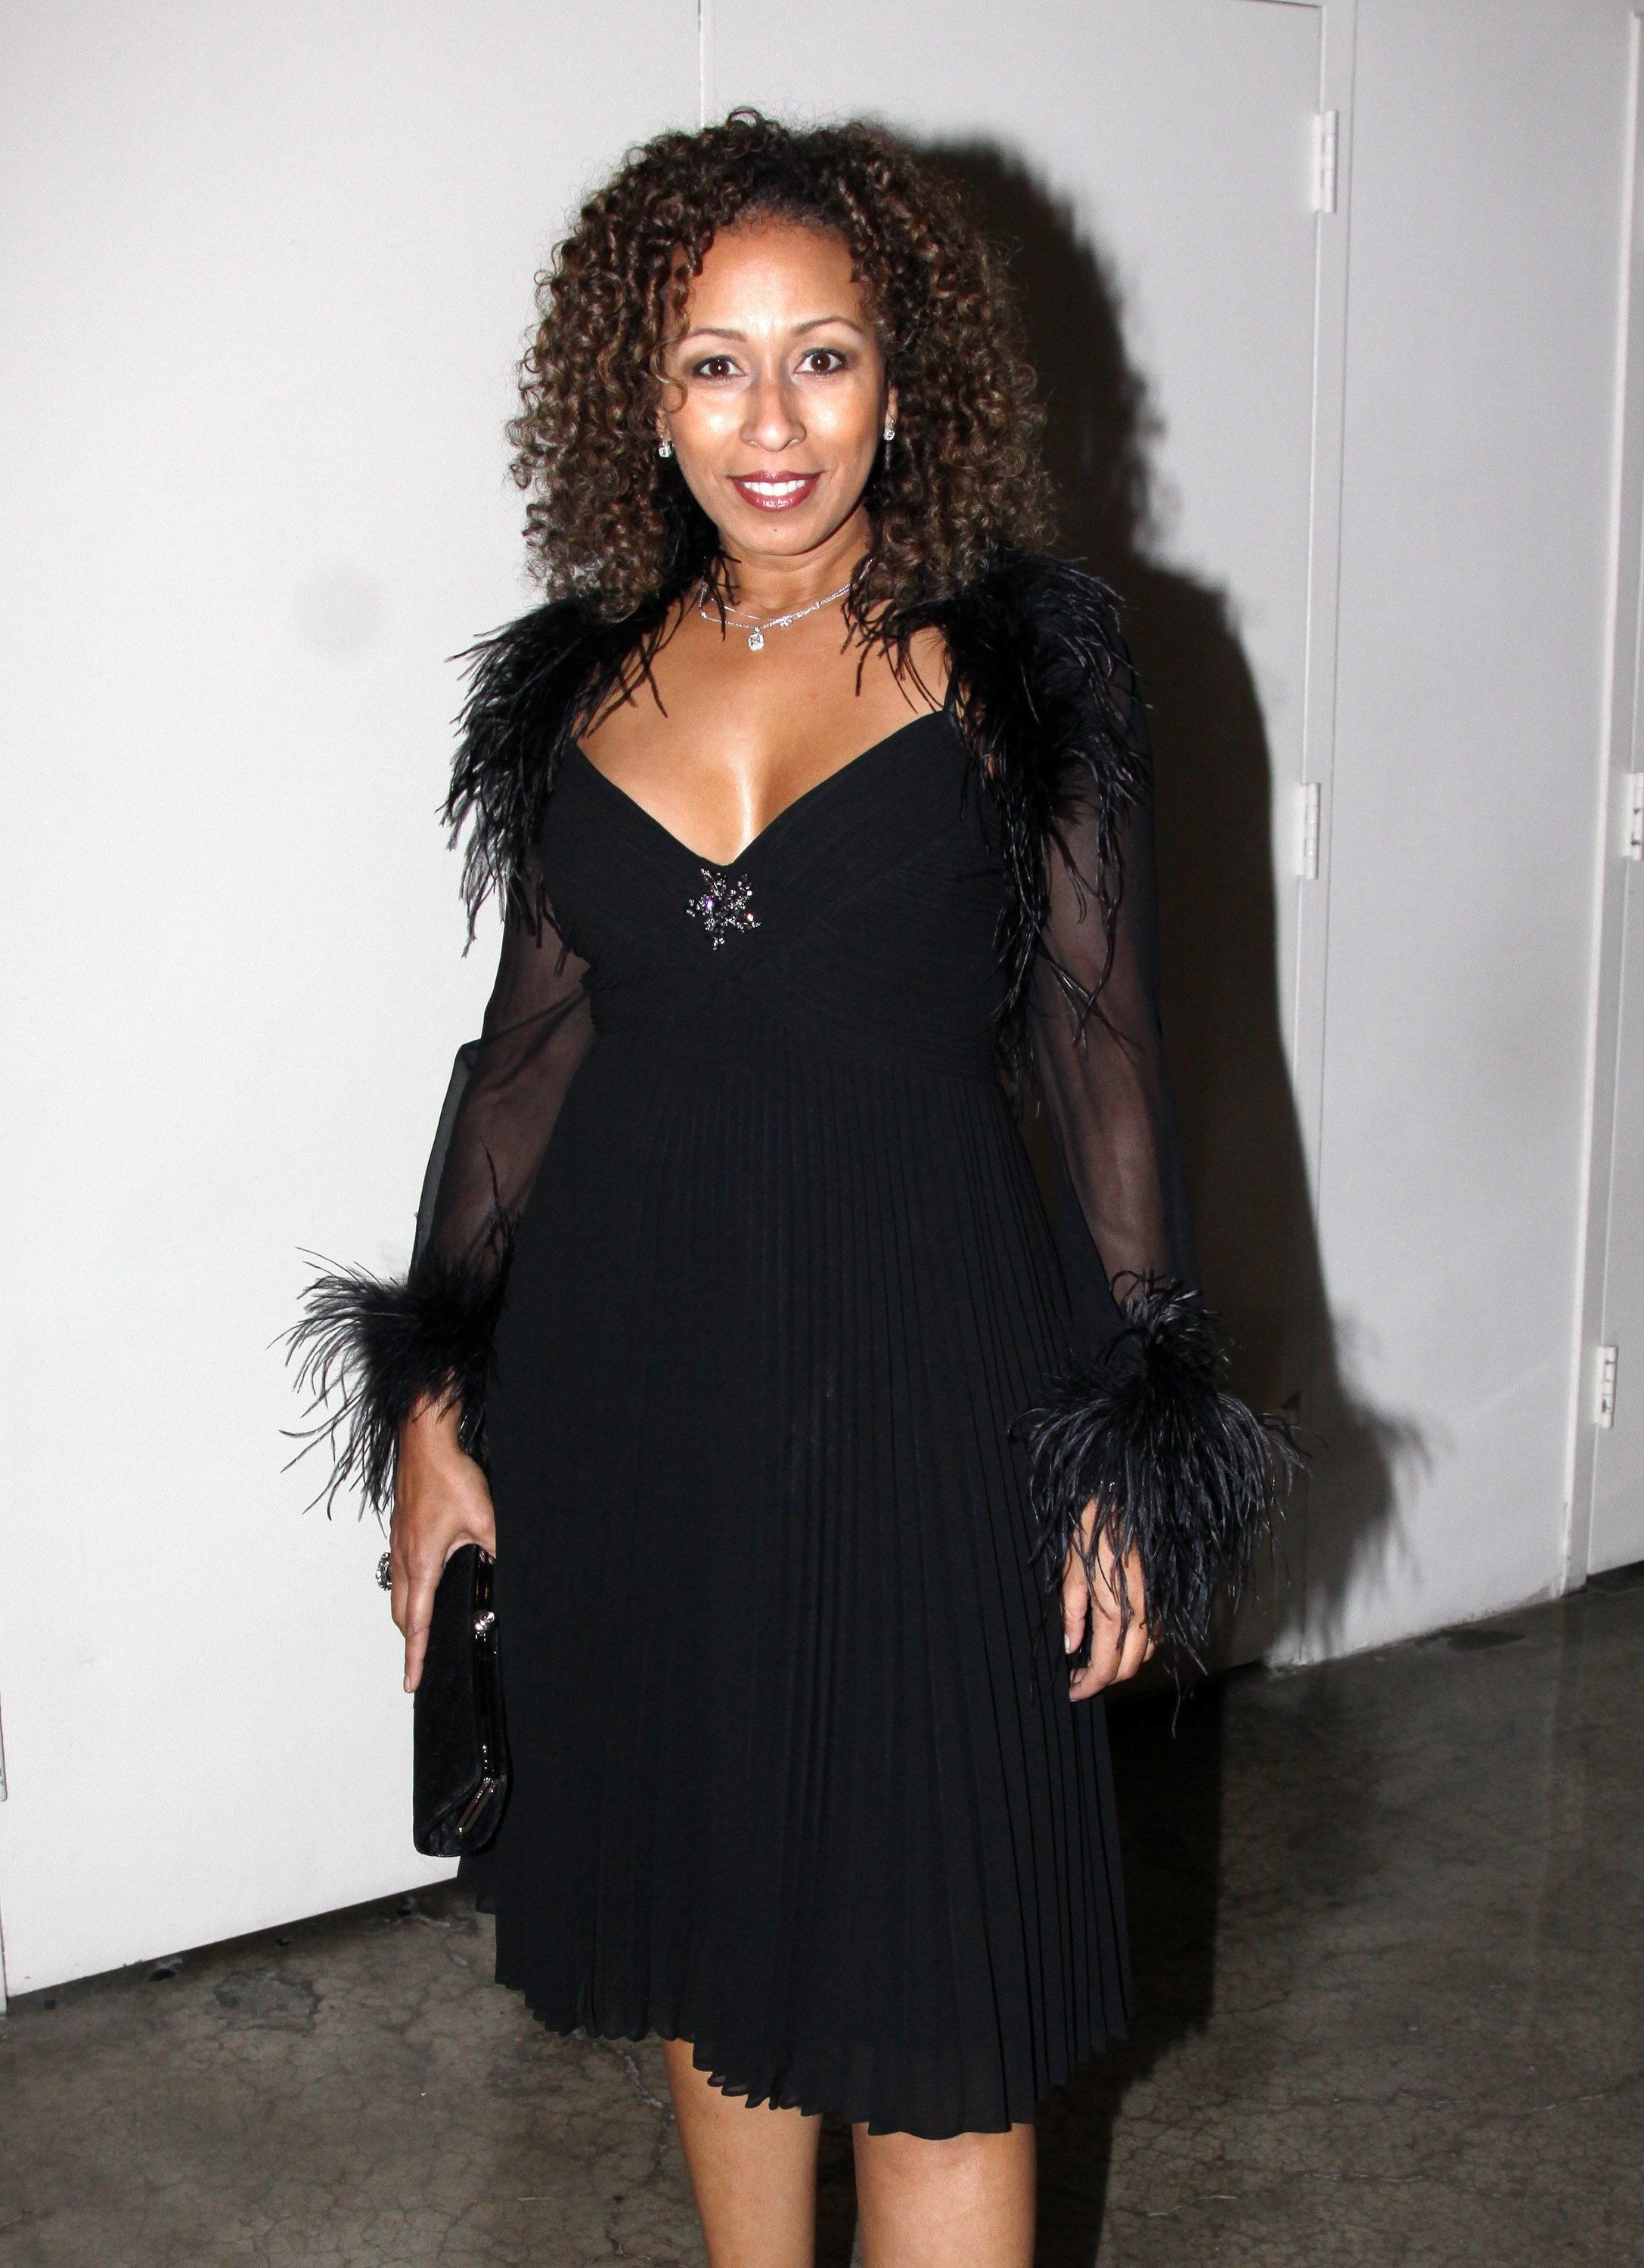 Tamara Tunie poses at the Stage Directors And Choreographers Society 50 Year Celebration at Tribeca Rooftop on November 8, 2009 in New York, New York | Photo: Getty Images